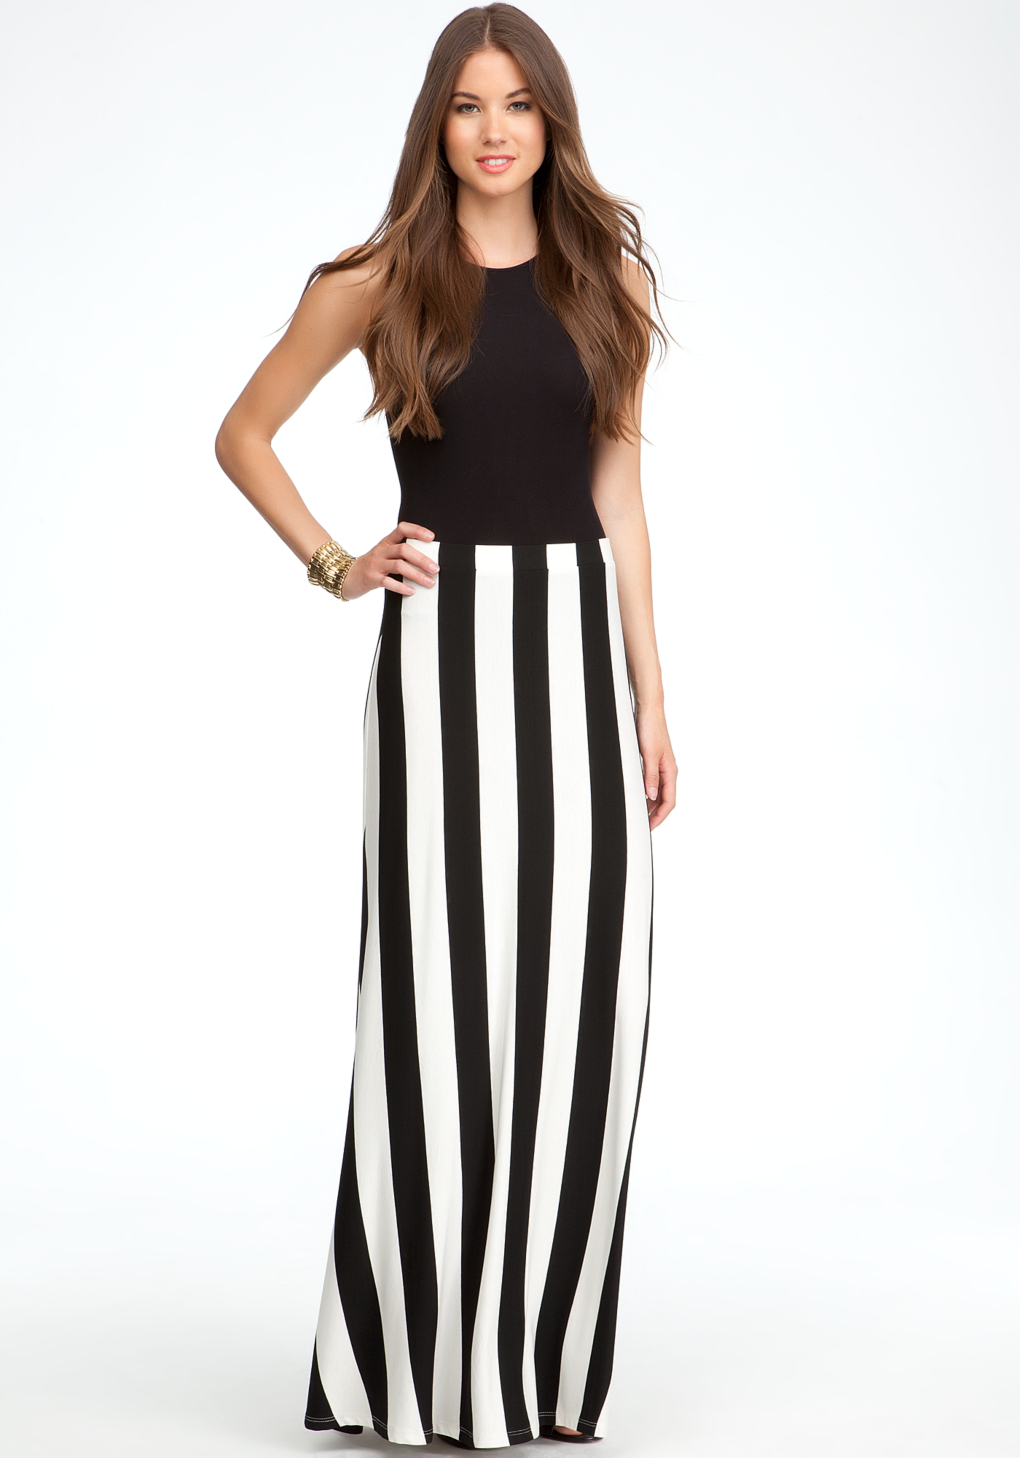 Bebe Vertical Rugby Stripe Maxi Skirt in Black | Lyst